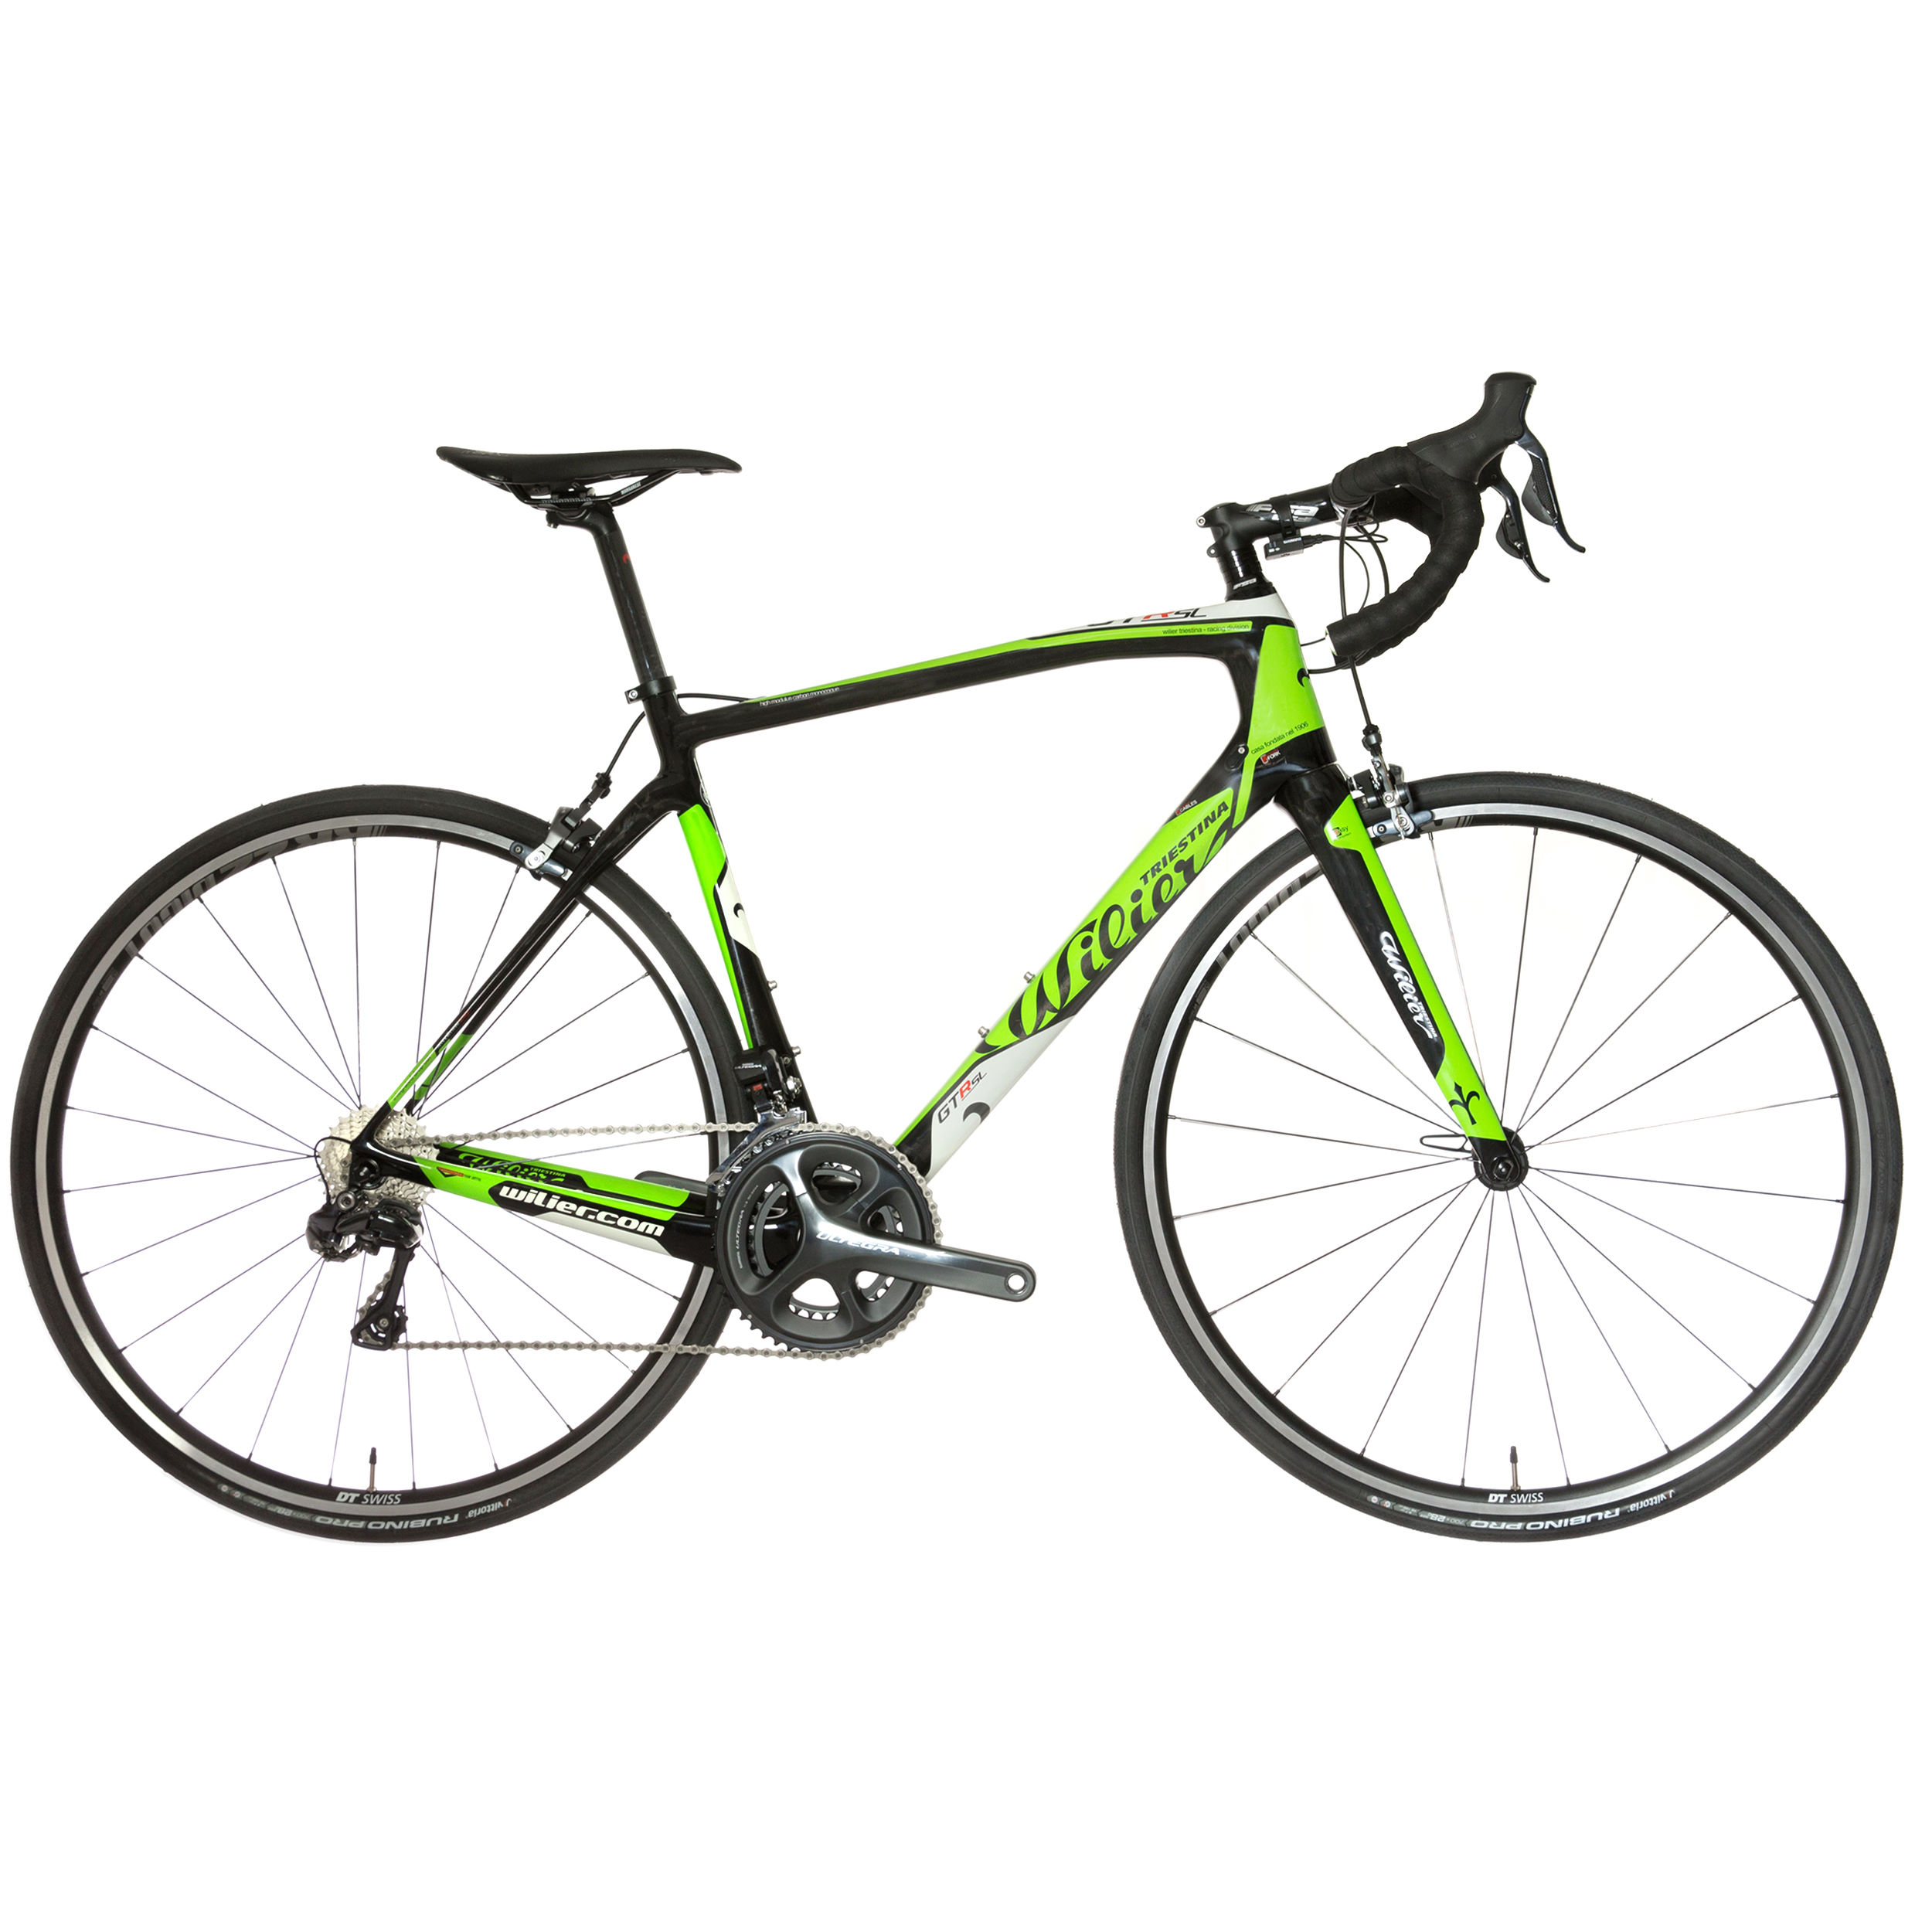 Wilier GTR SL Endurance Ultegra Di2 2017 Road Bike Road Bikes Black Green 2017 0?w=2000&h=2000&a=7 wiggle wilier gtr sl endurance (ultegra di2 2017) road bike  at bayanpartner.co